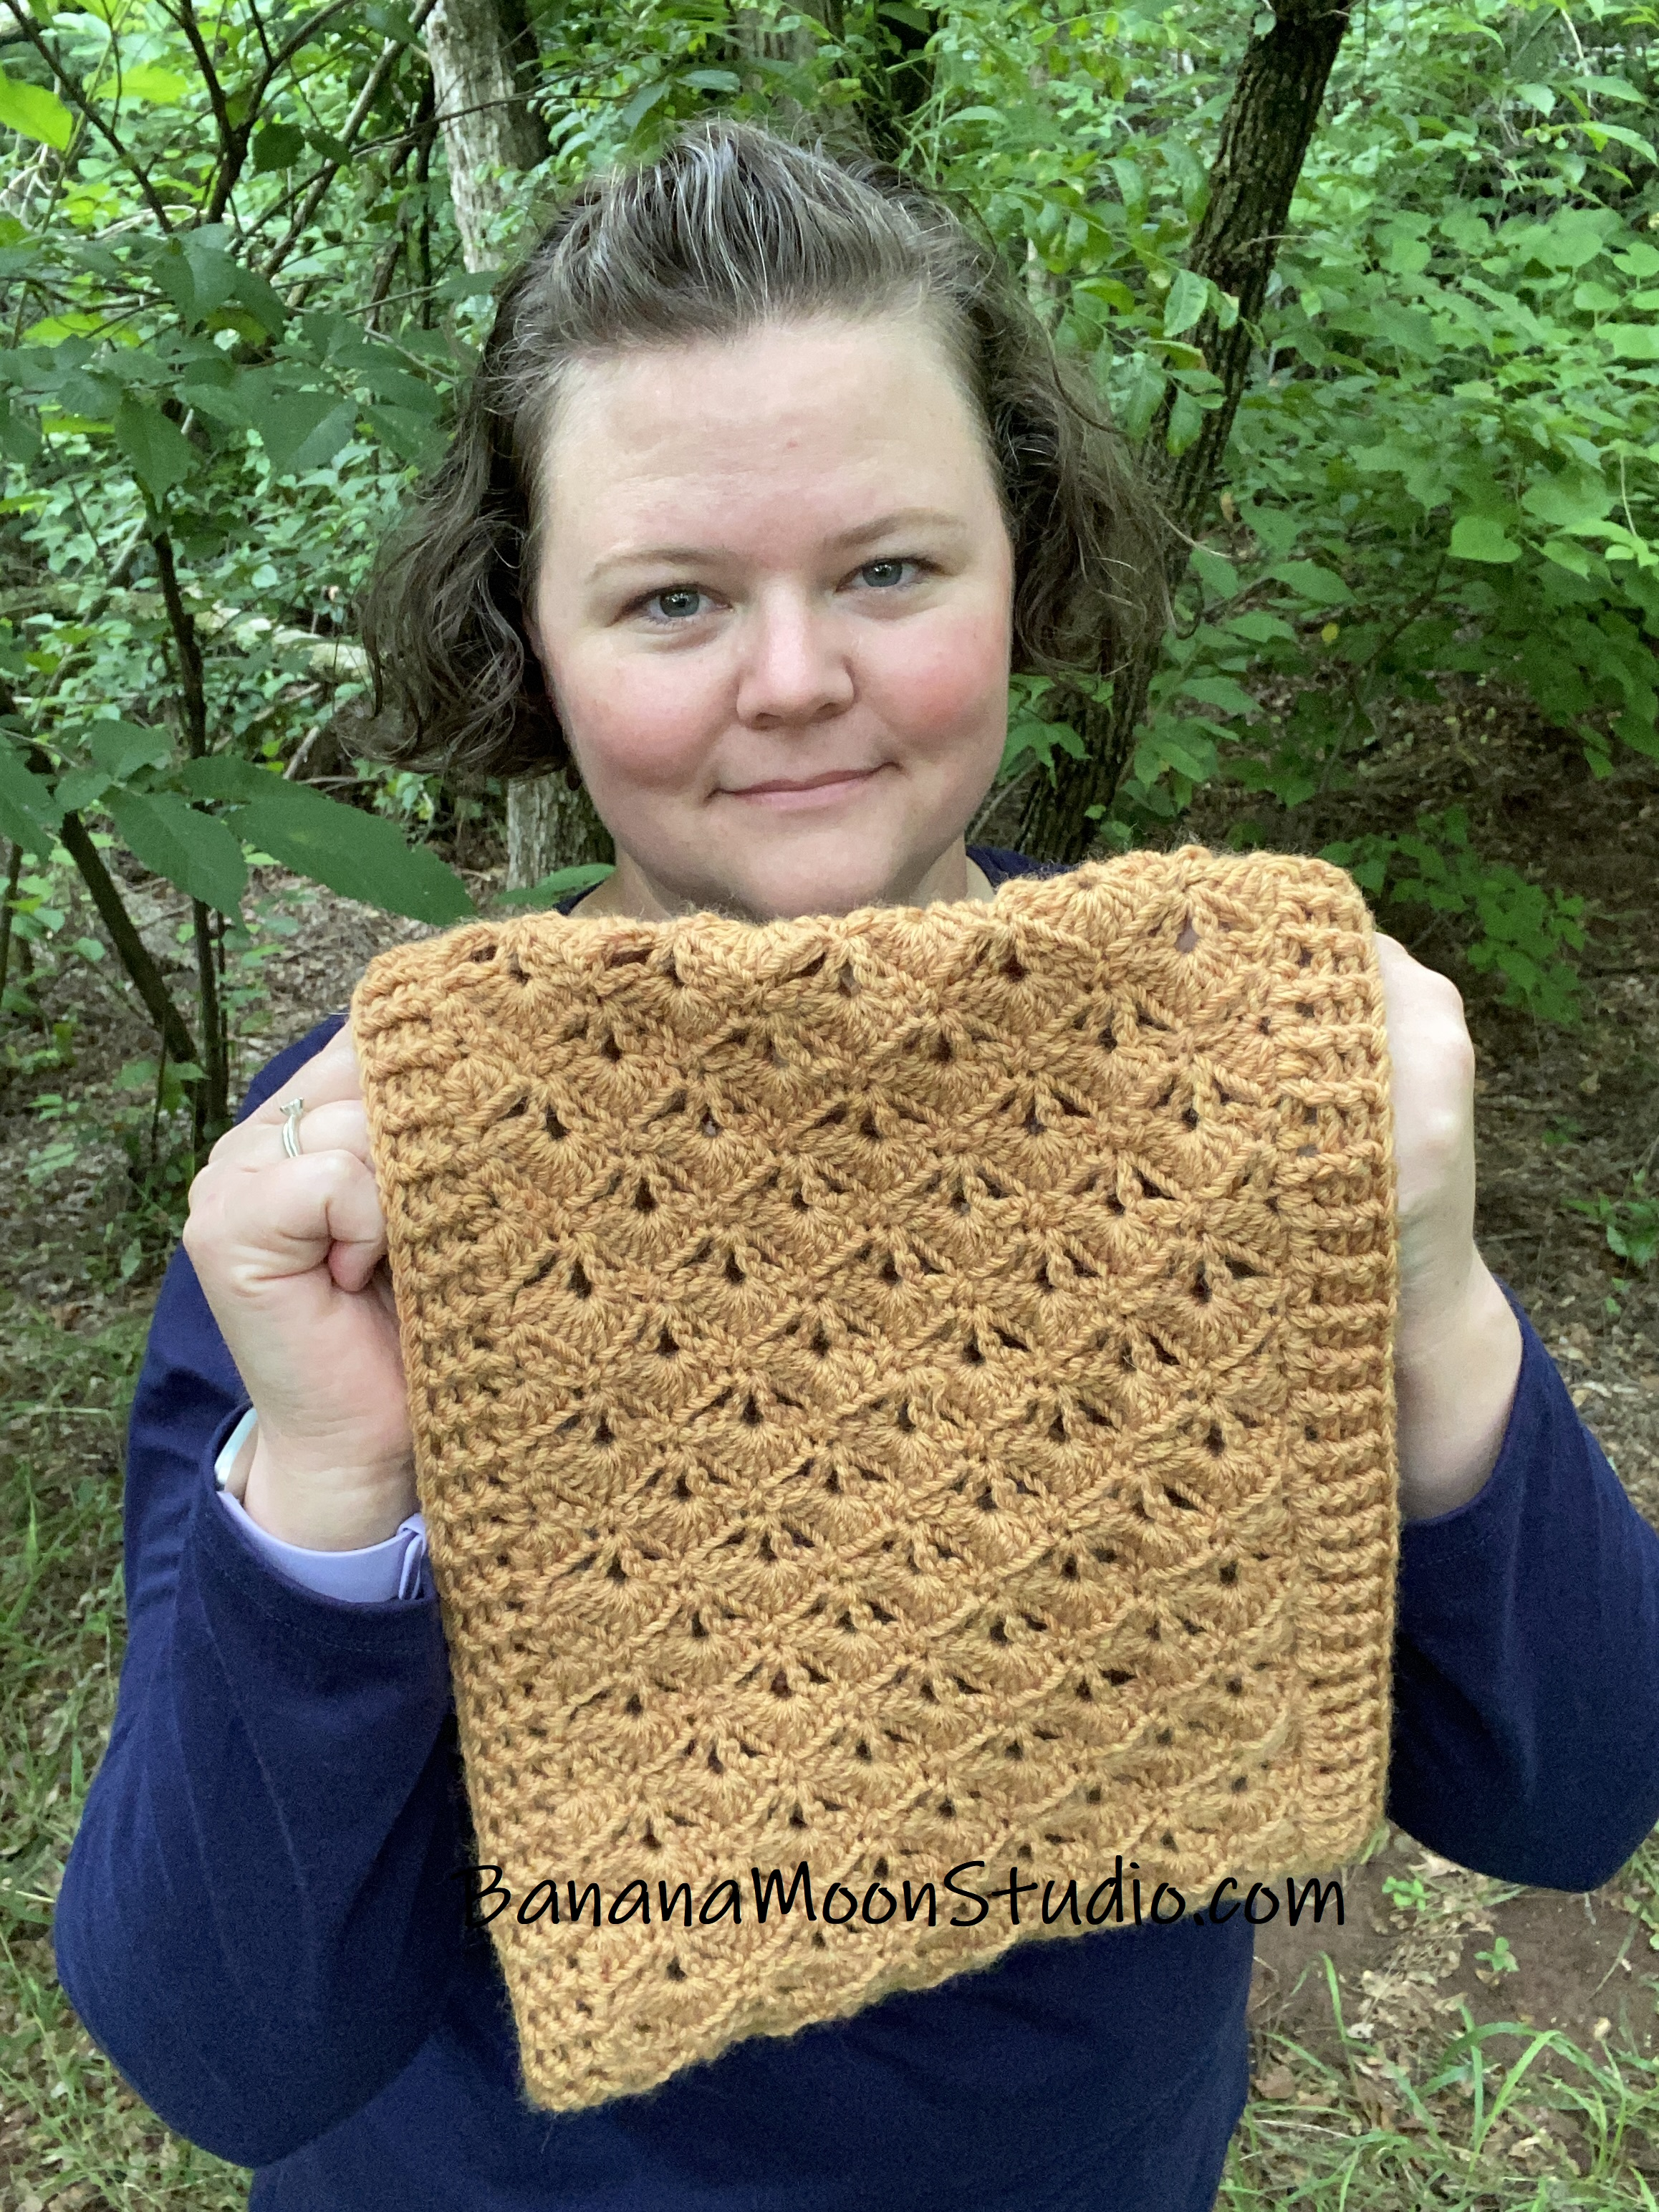 Woman holding up a crochet cowl with a crochet fan stitch pattern and ribbed edges. She is standing in the woods. Text reads: BananaMoonStudio.com.